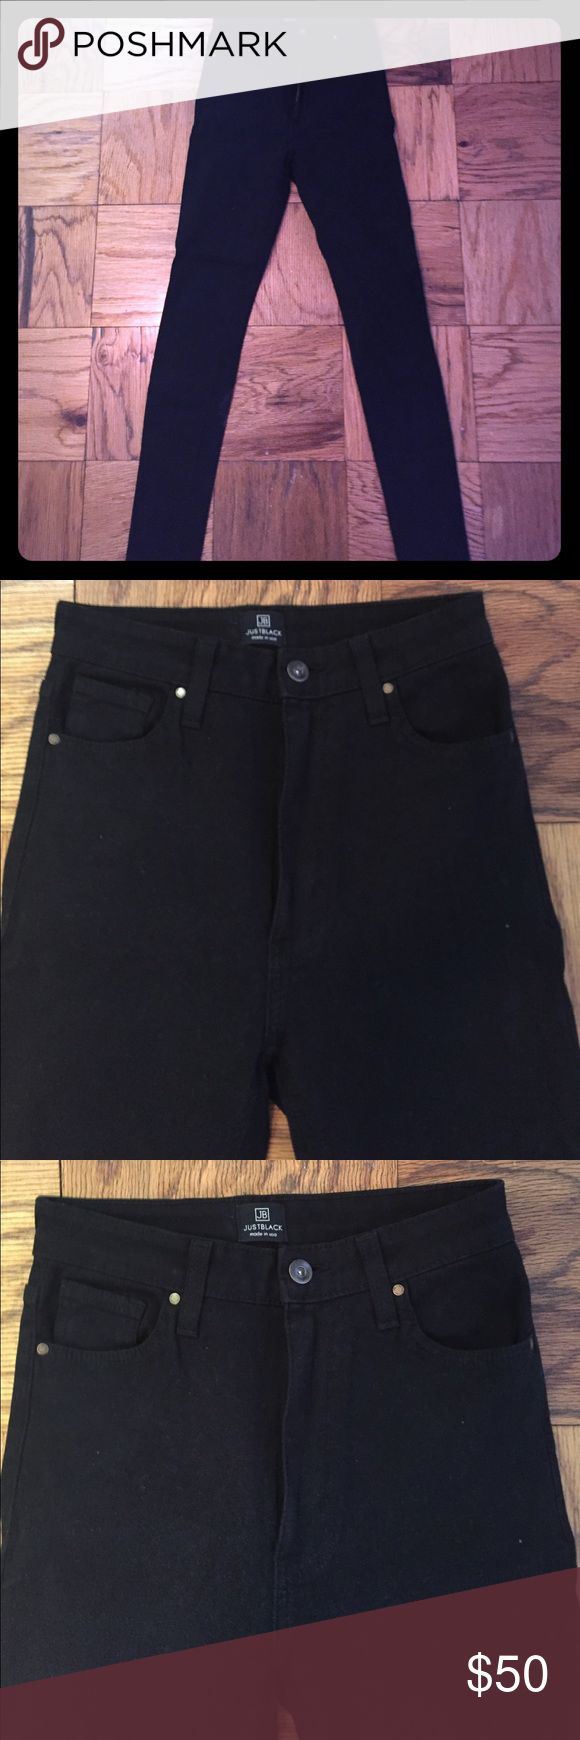 Just Black high-waisted stretch skinny jean Just Black high-waisted stretch skinny jean in black. Very flattering and comfortable. In perfect condition. Just Black Jeans Skinny